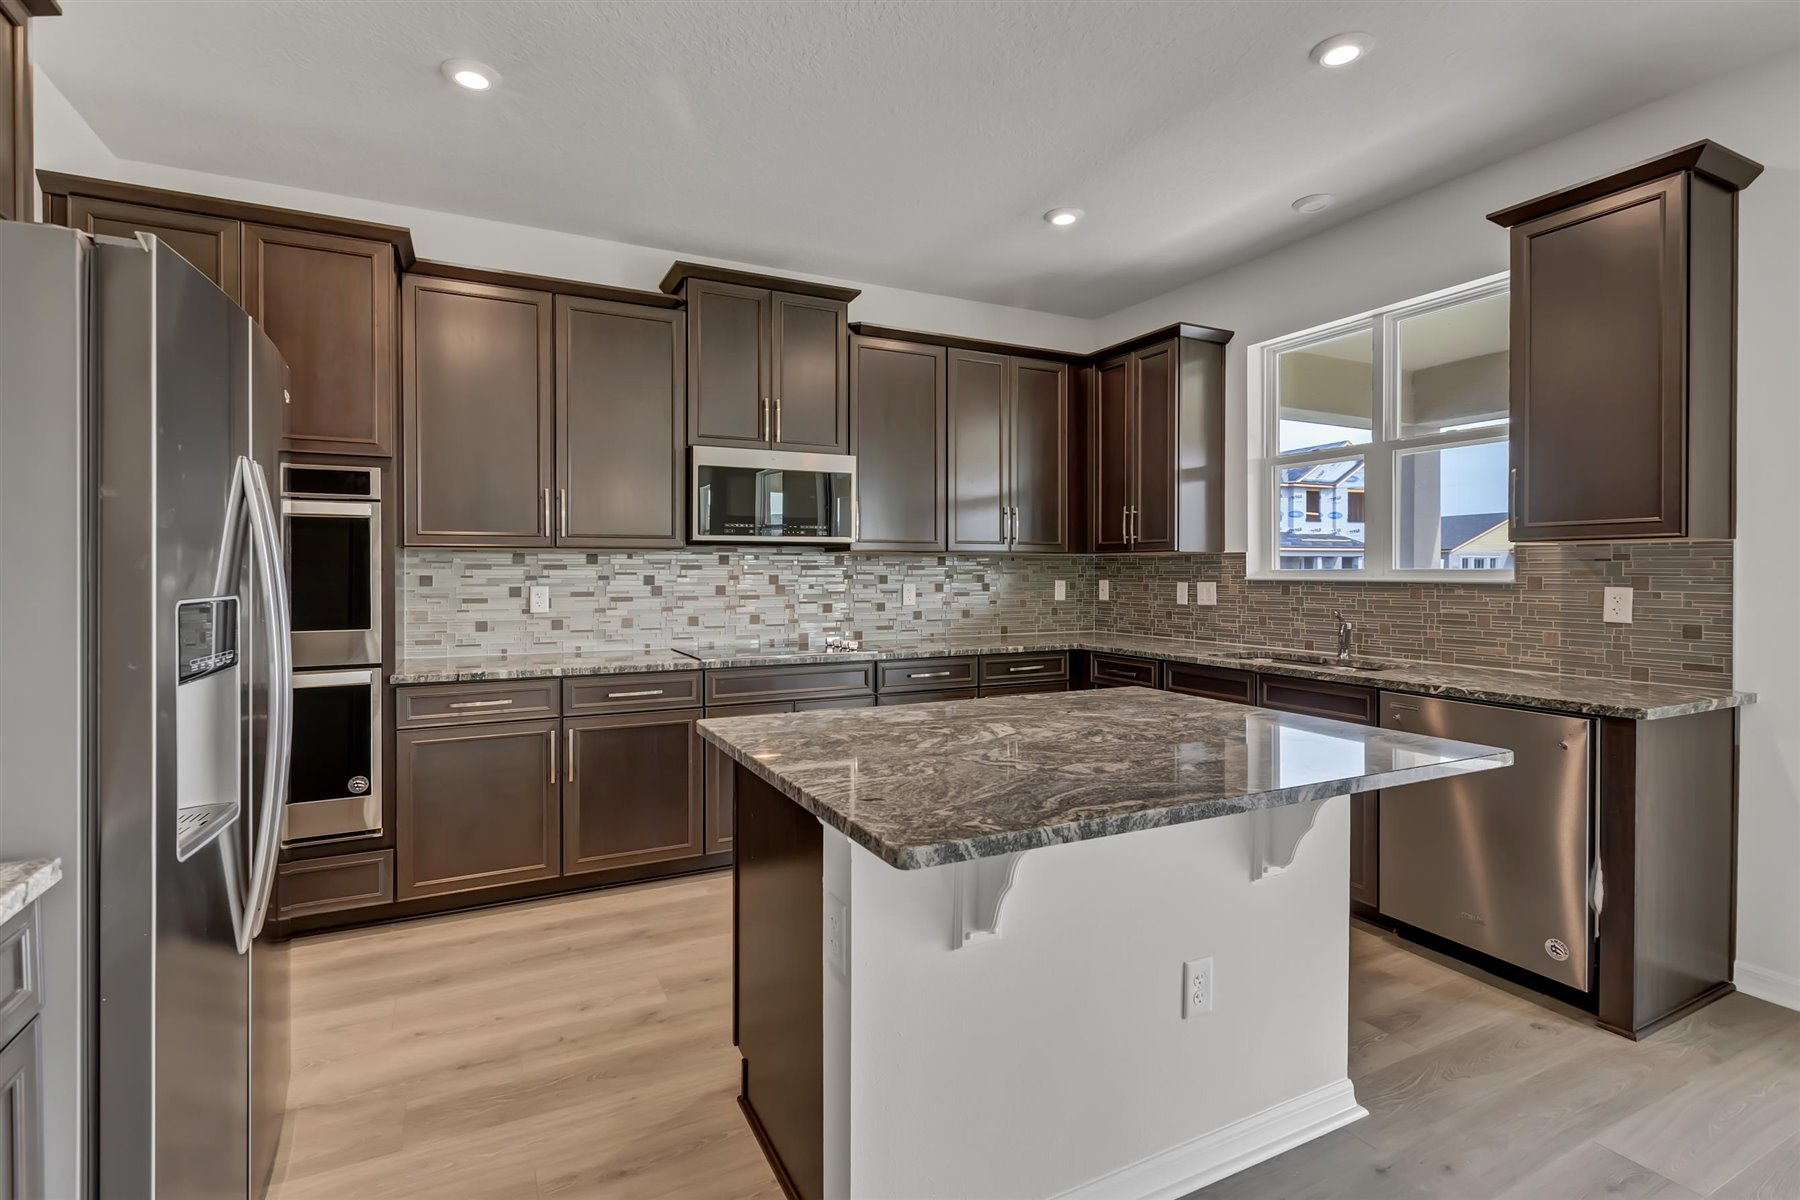 Catalina Plan Kitchen at Meridian Parks in Orlando Florida by Mattamy Homes